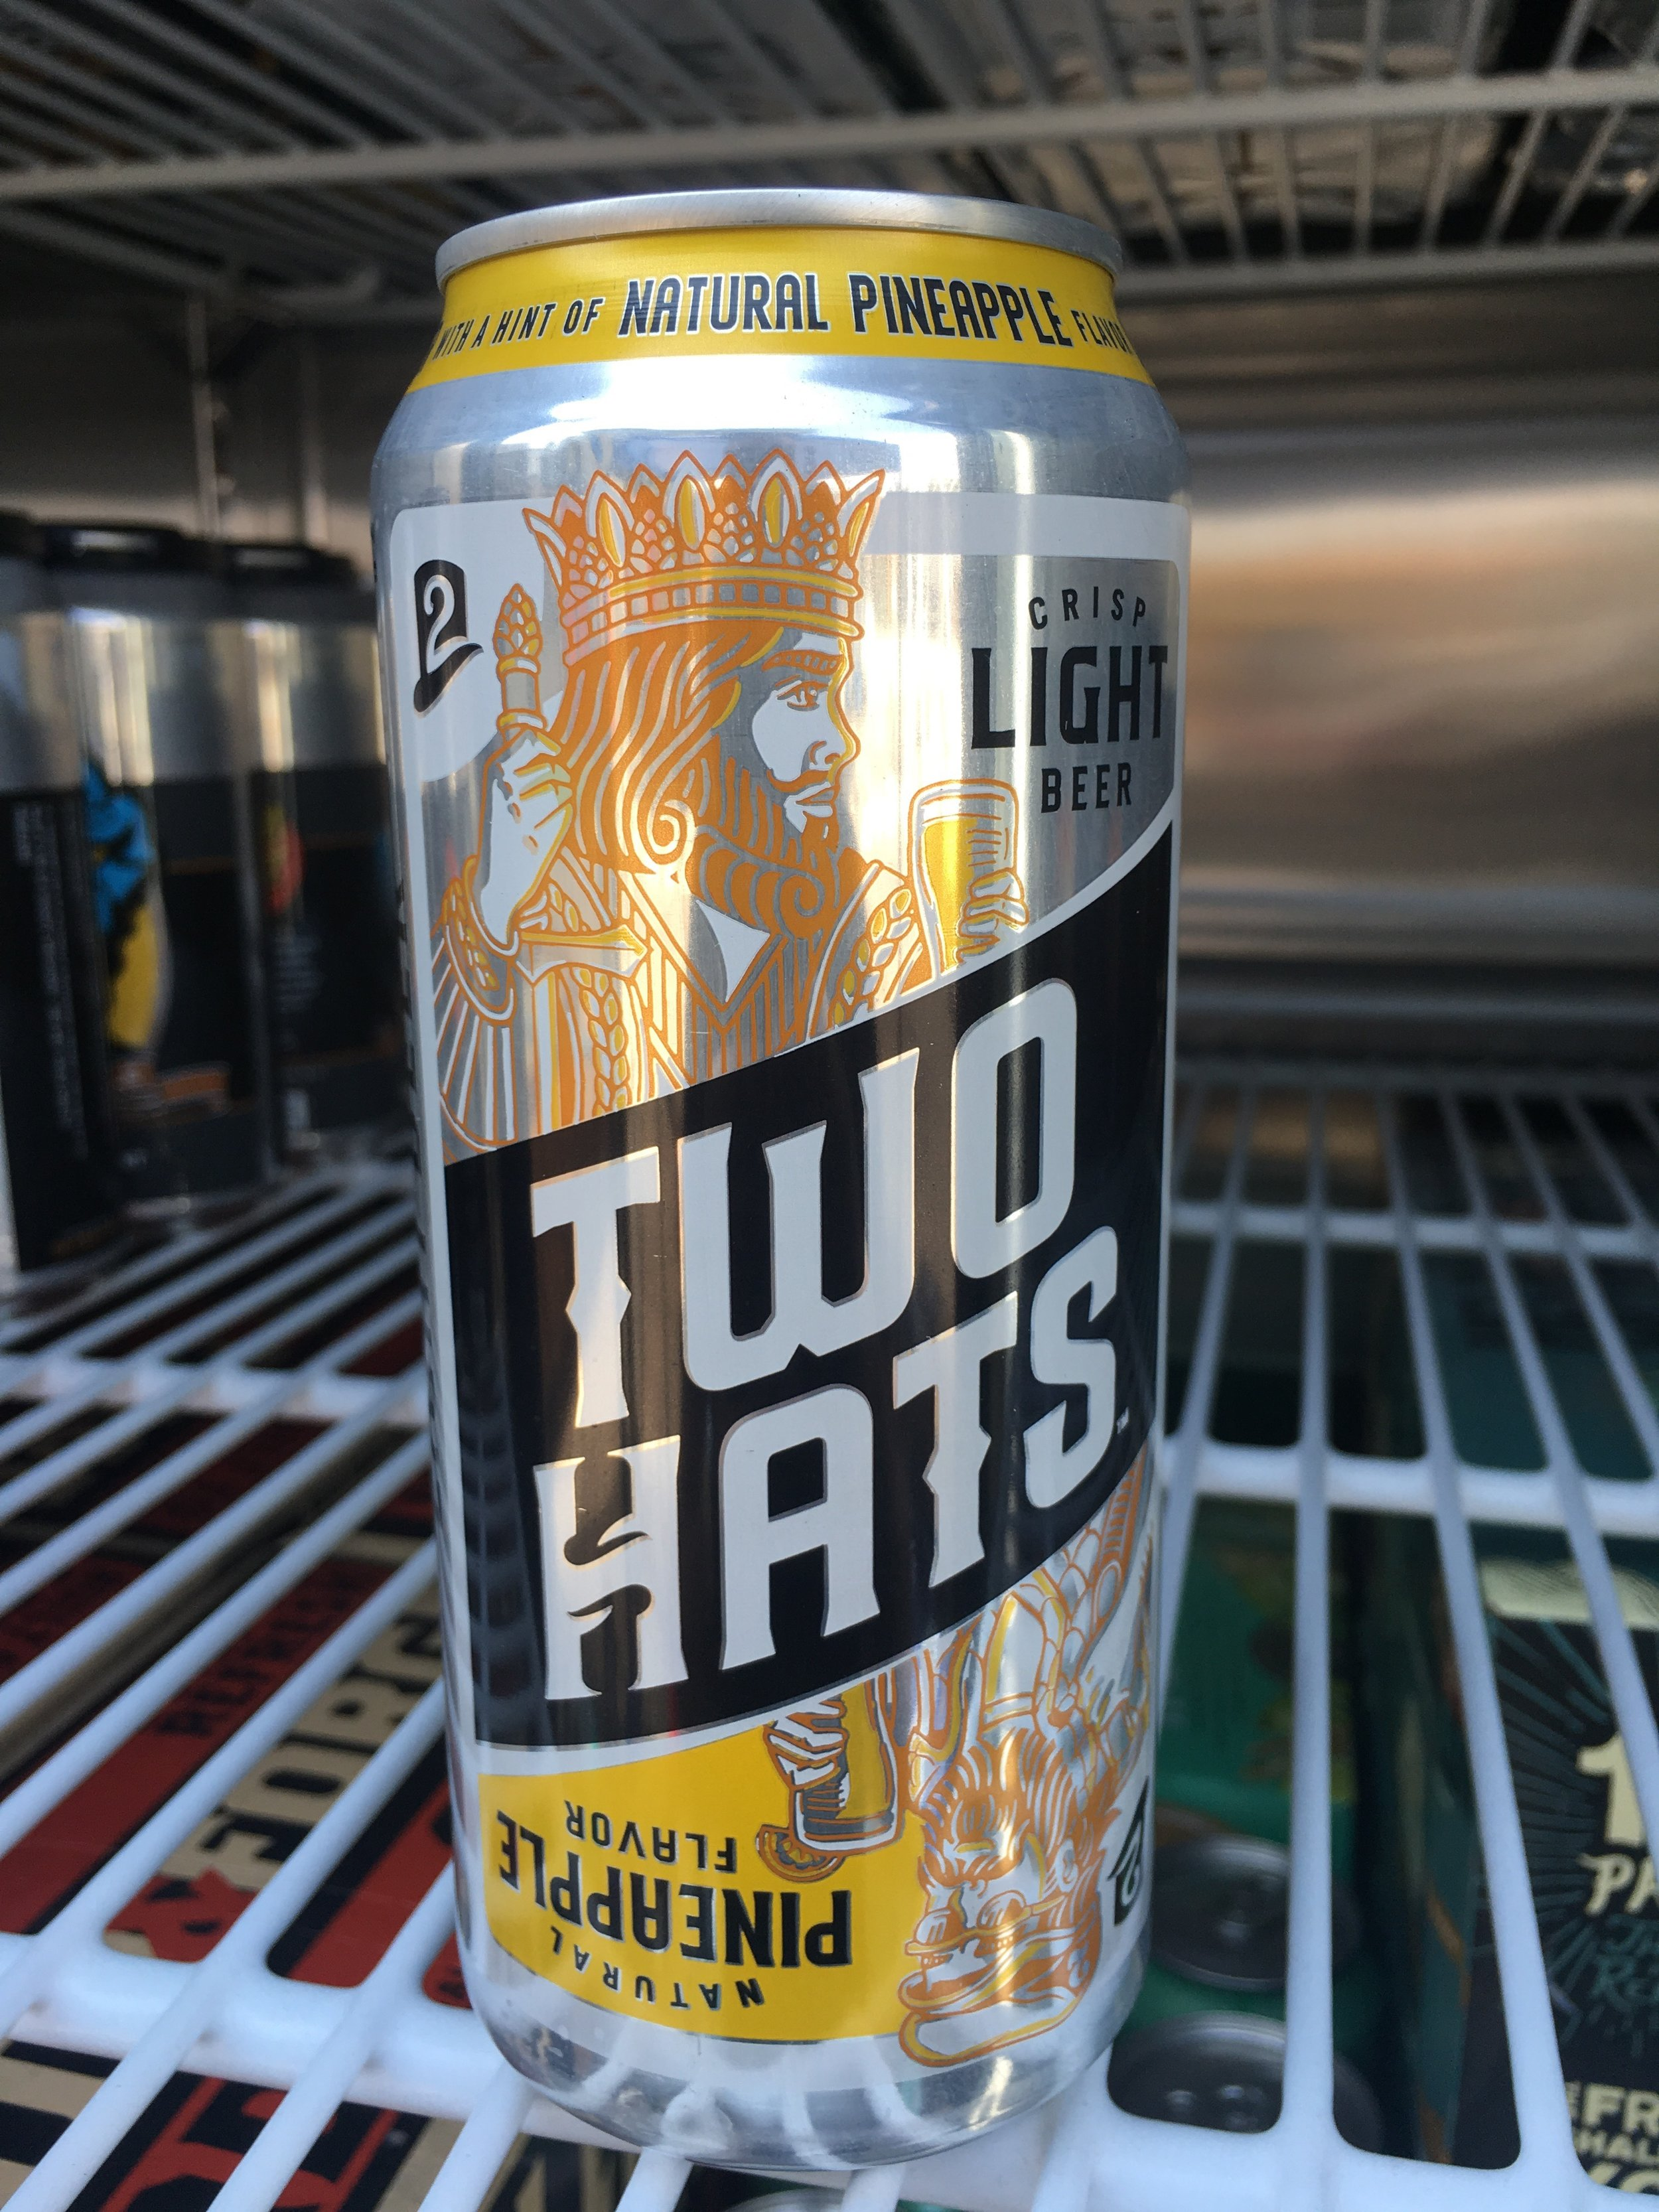 Two Hats - Pineapple Lager